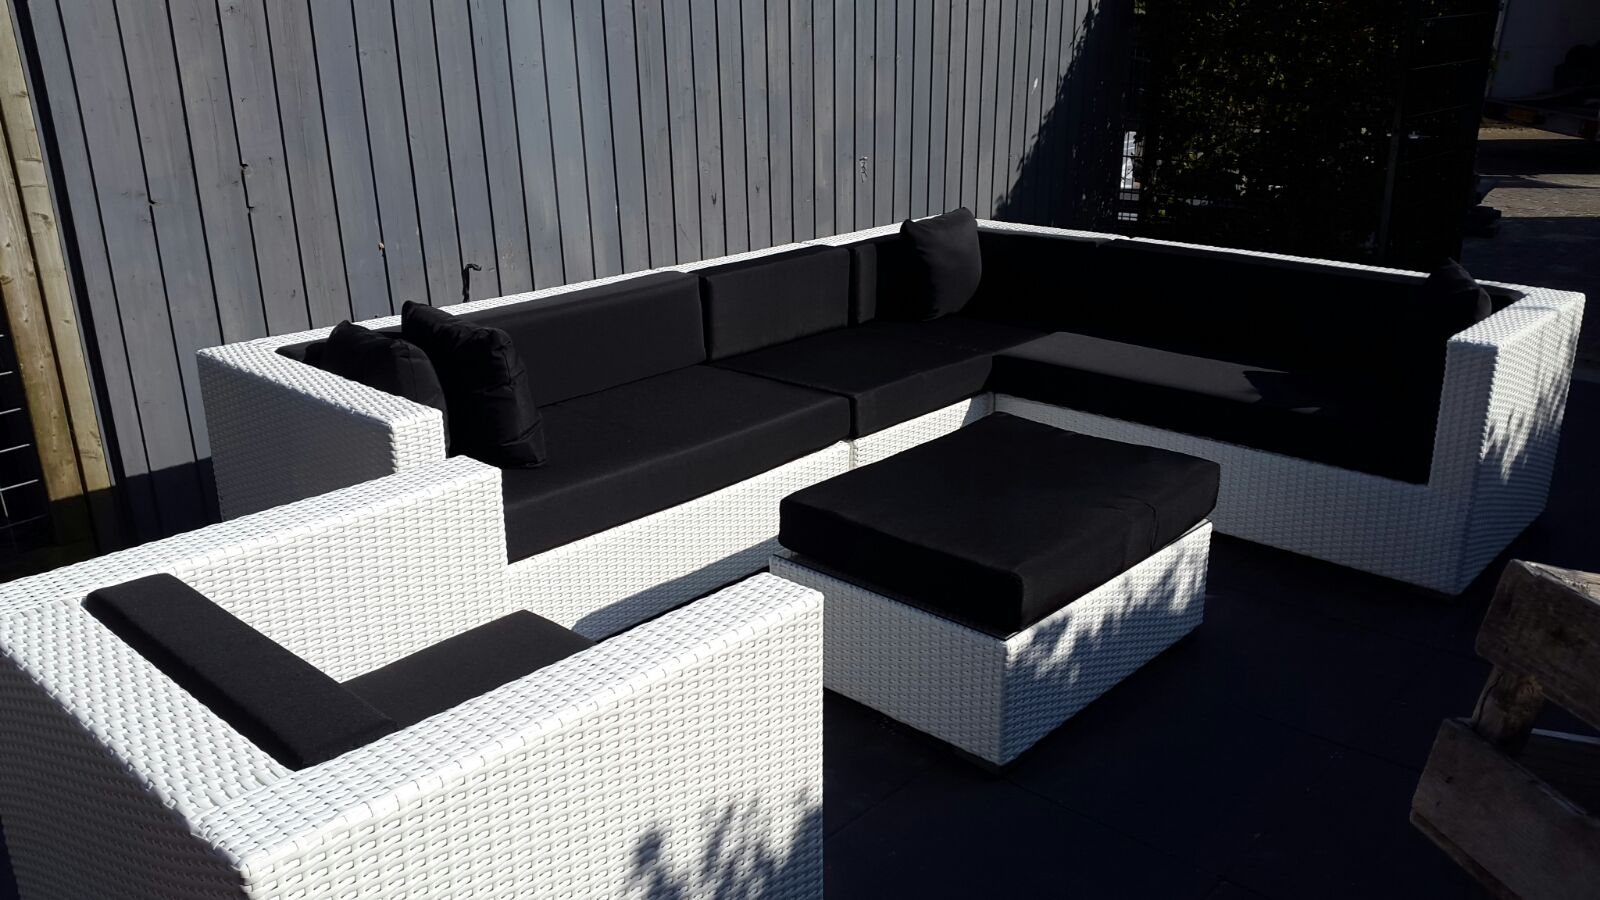 loungeset balkon klein simple bij kwantum slaag je altijd voor je tuin of balkon hier vind je. Black Bedroom Furniture Sets. Home Design Ideas